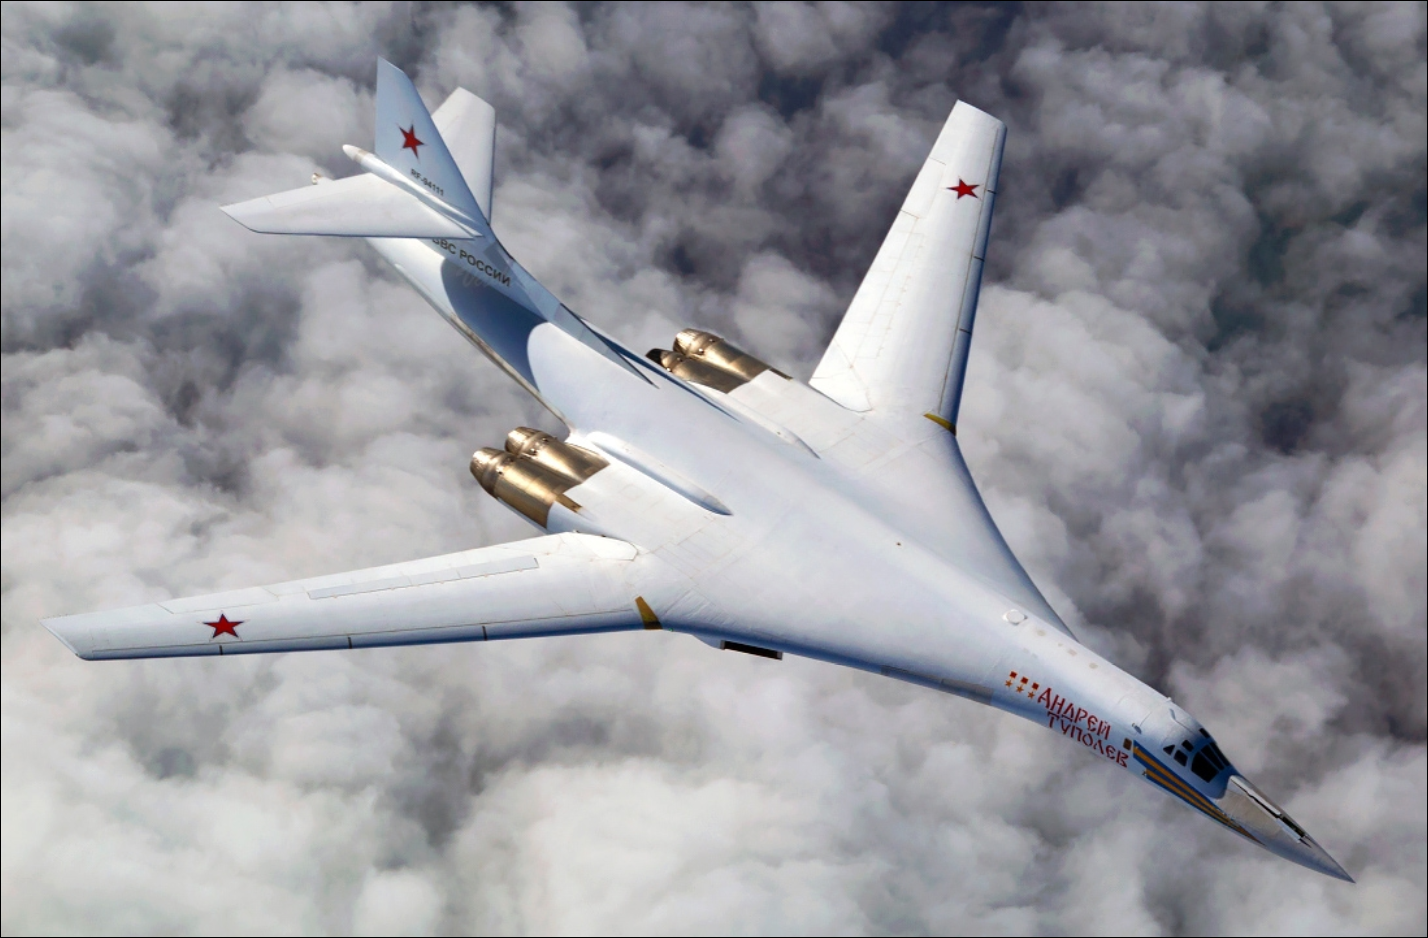 Everything You Need To Know About The Tu-160 Blackjack, The Largest Strategic Bomber In History